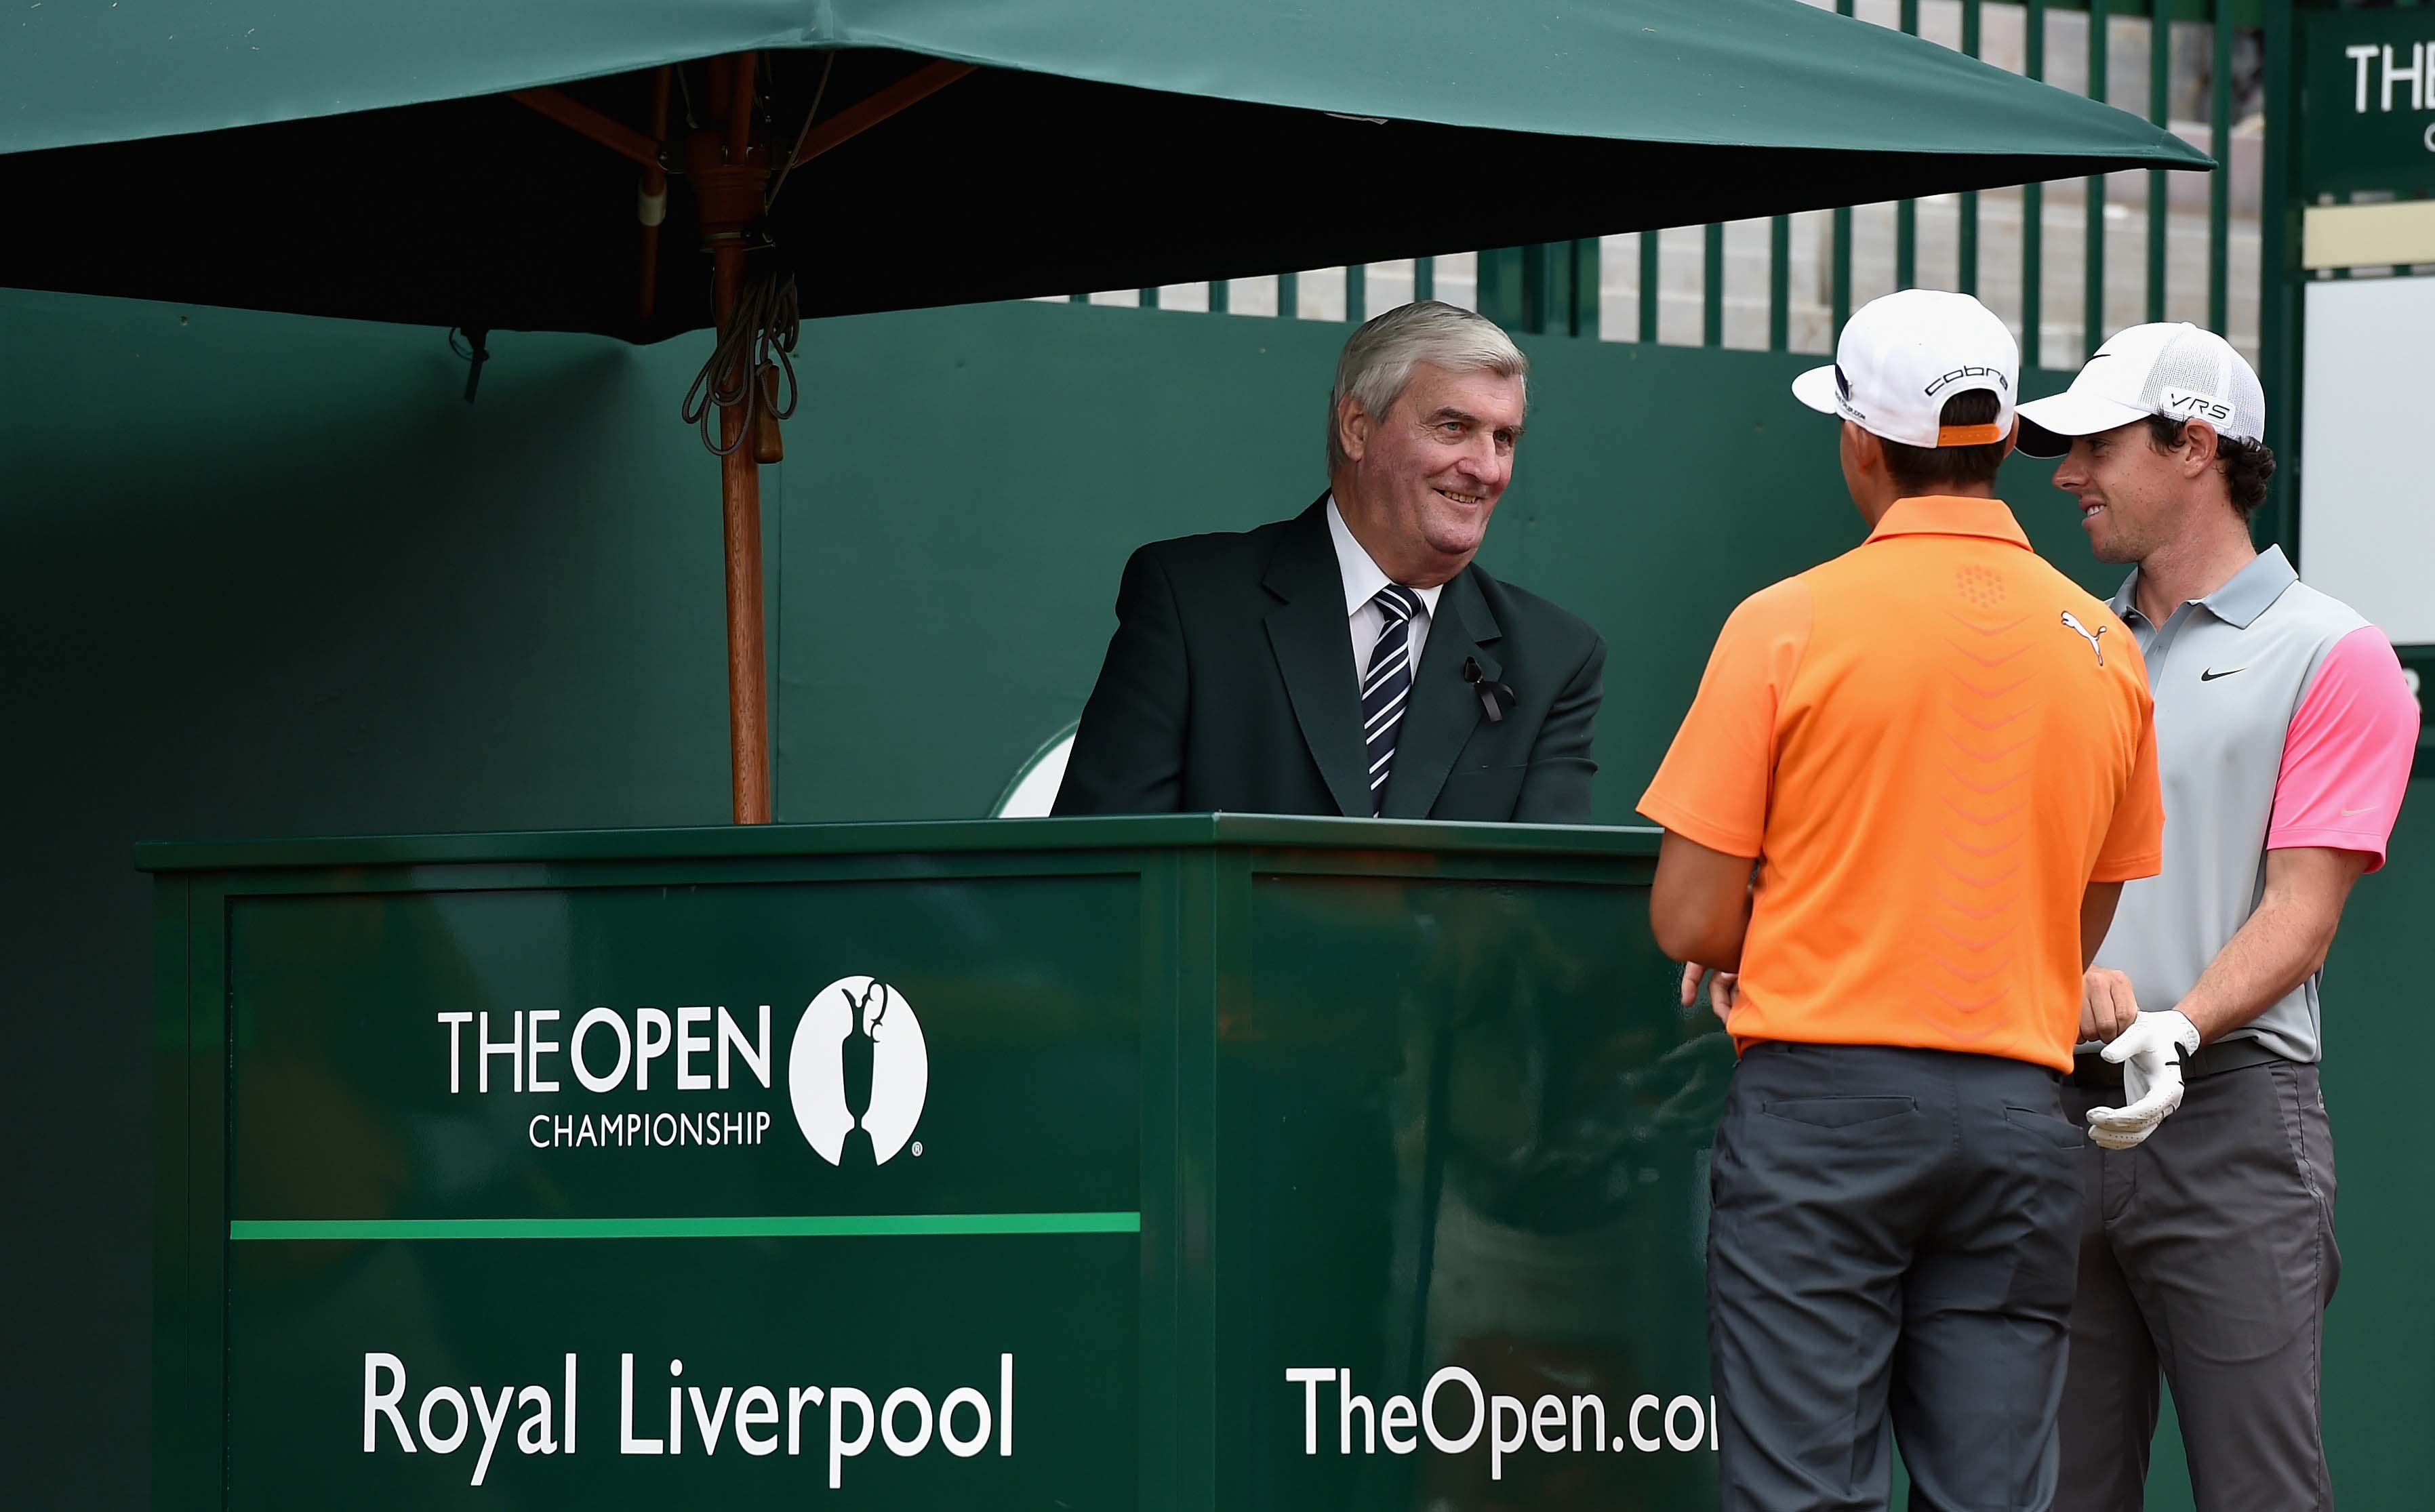 Rickie Fowler, Rory McIlroy and Ivor Robson